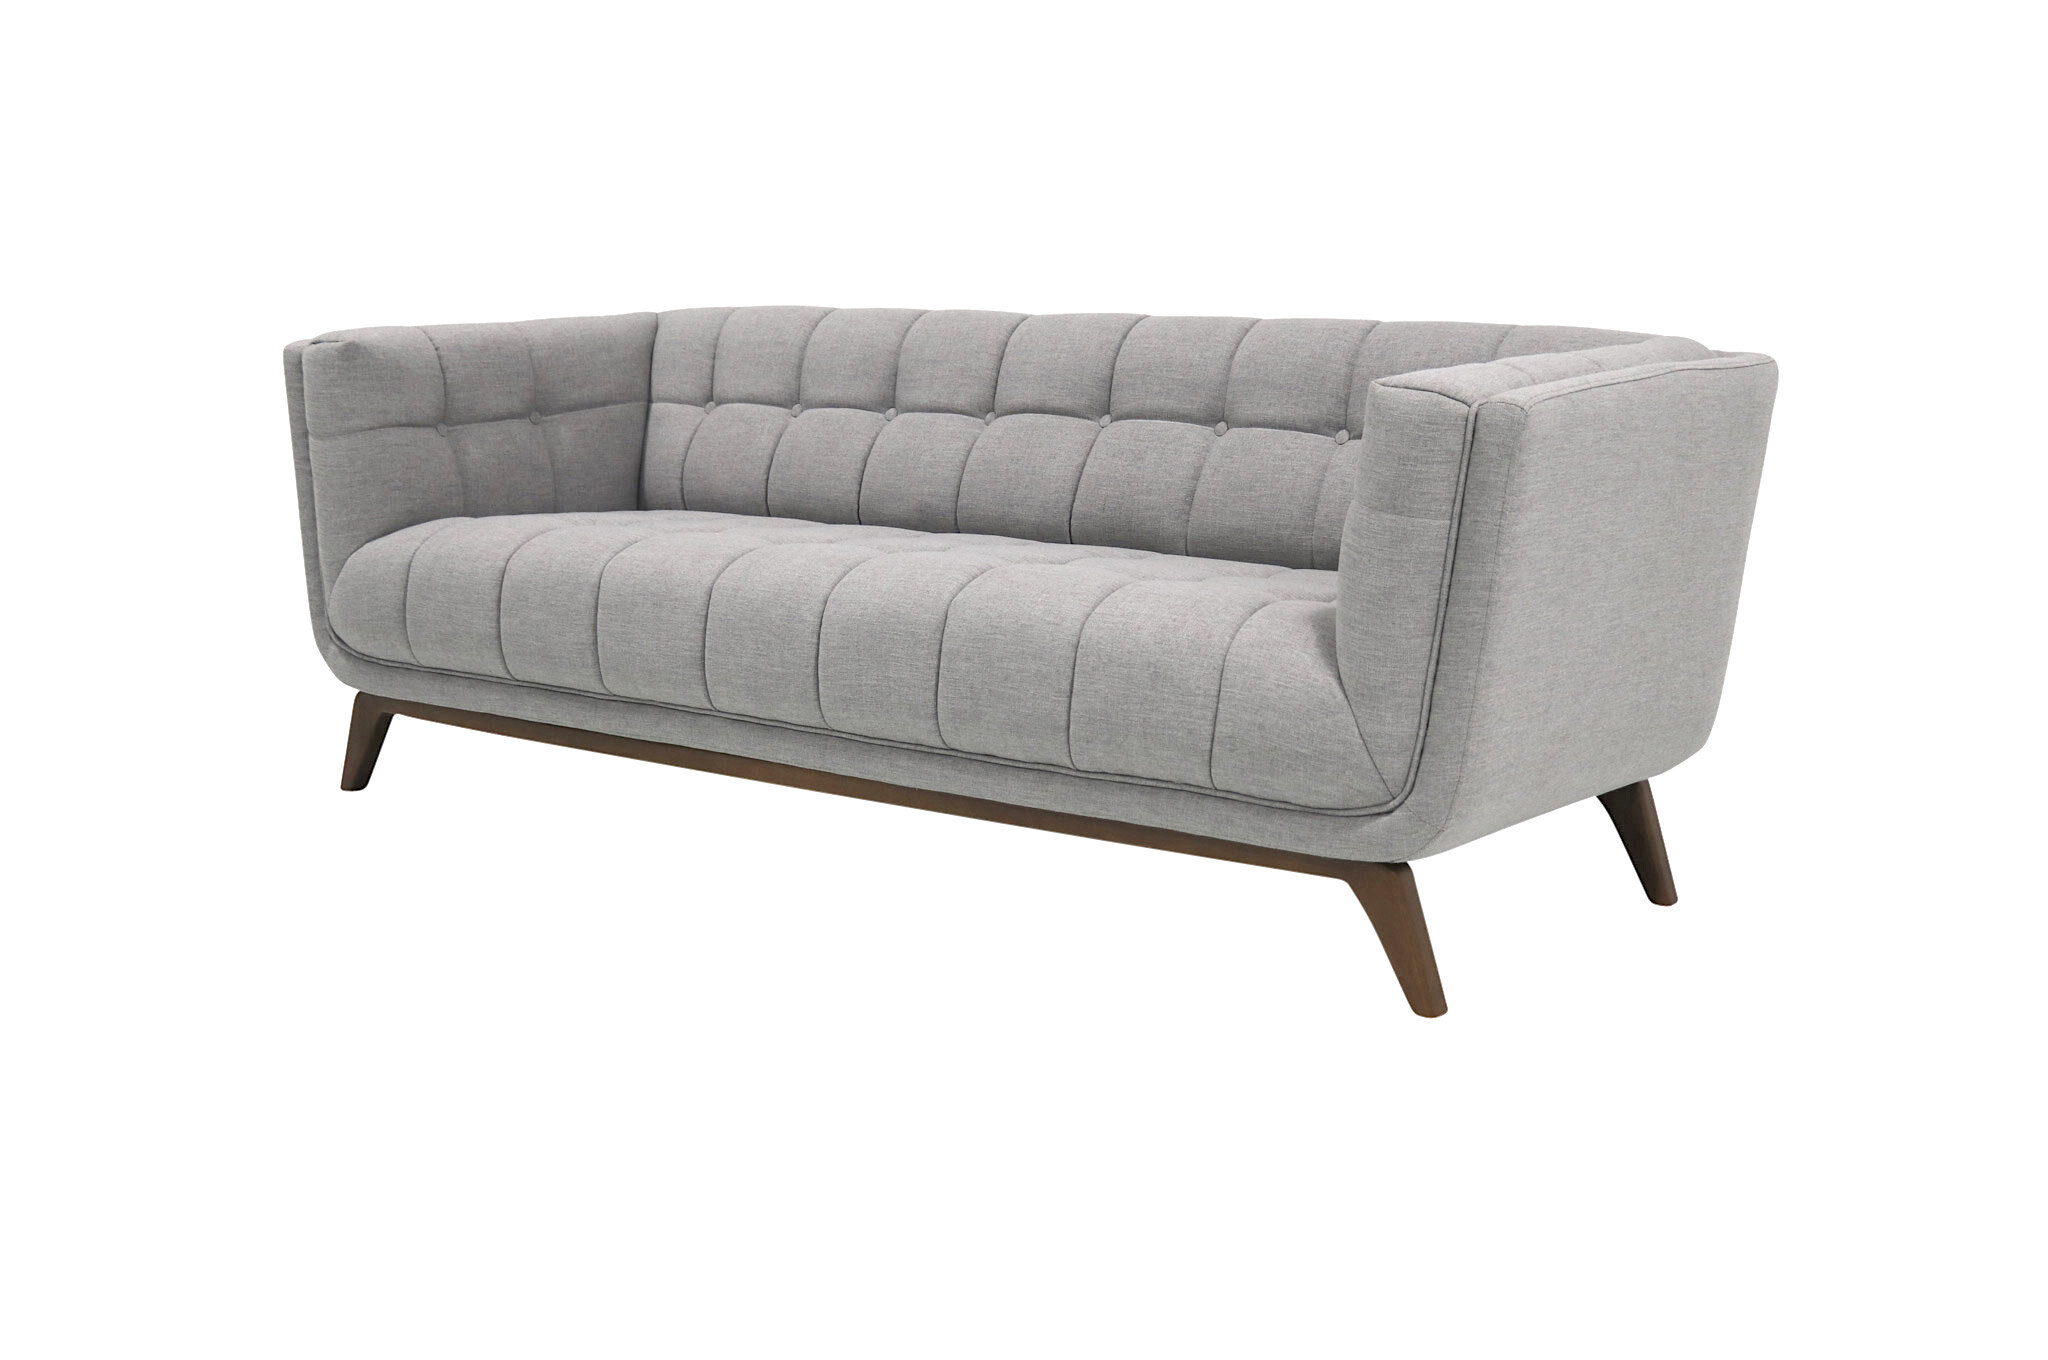 Pleasant Worsley Mid Century Modern Chesterfield Sofa Cjindustries Chair Design For Home Cjindustriesco